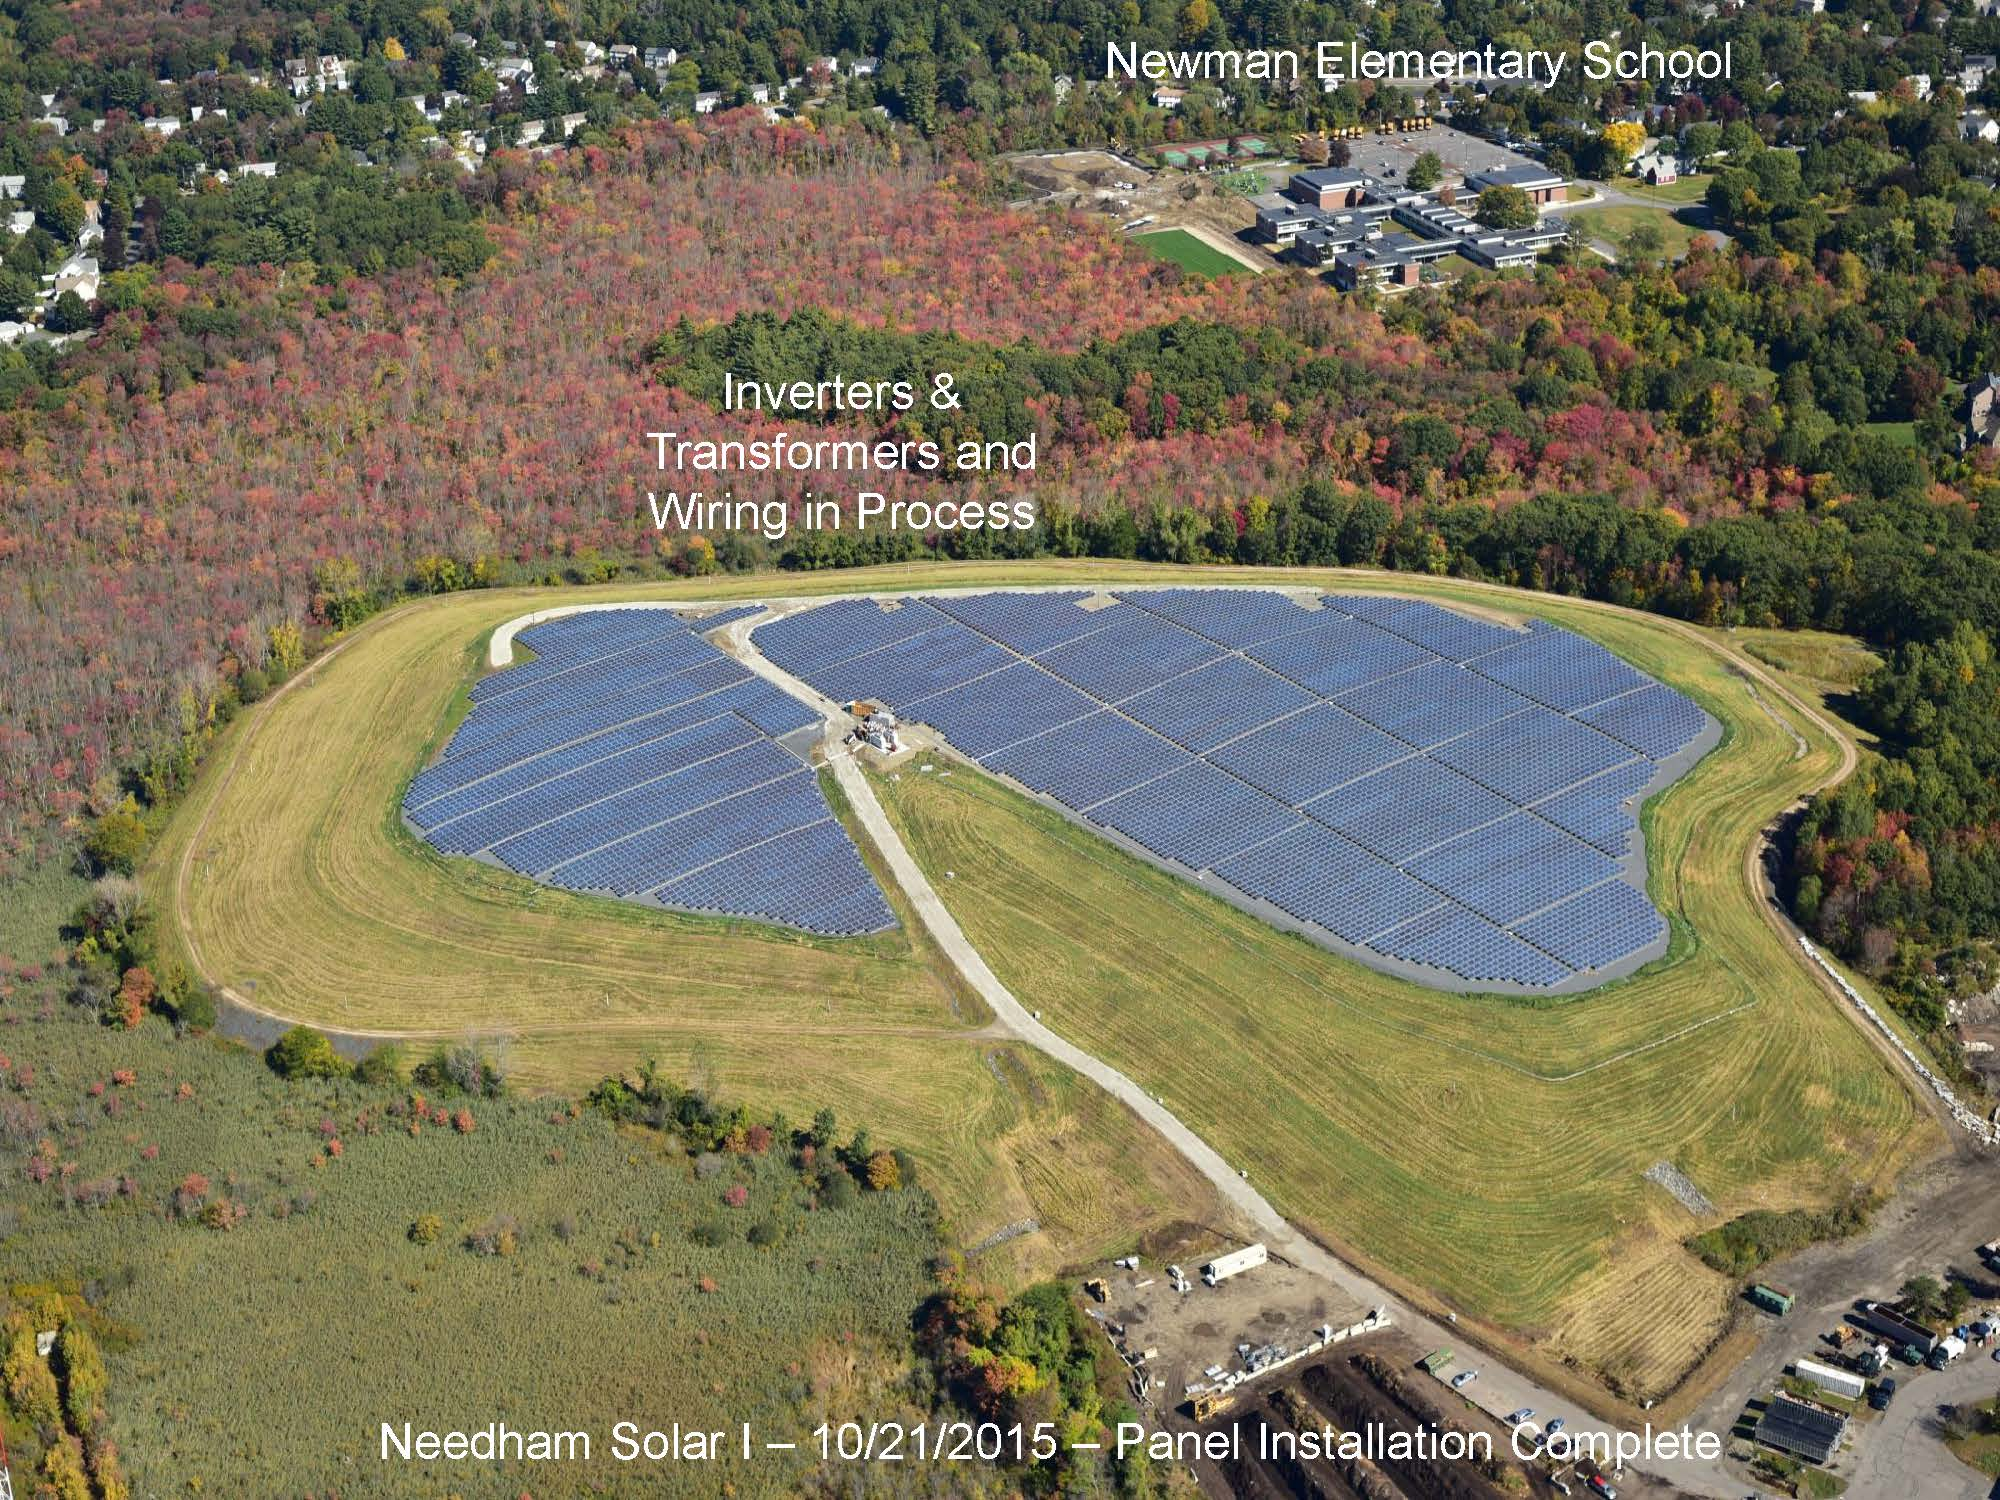 Page 11 of the Green Needham Presentation of the Solar 1 Landfill Project